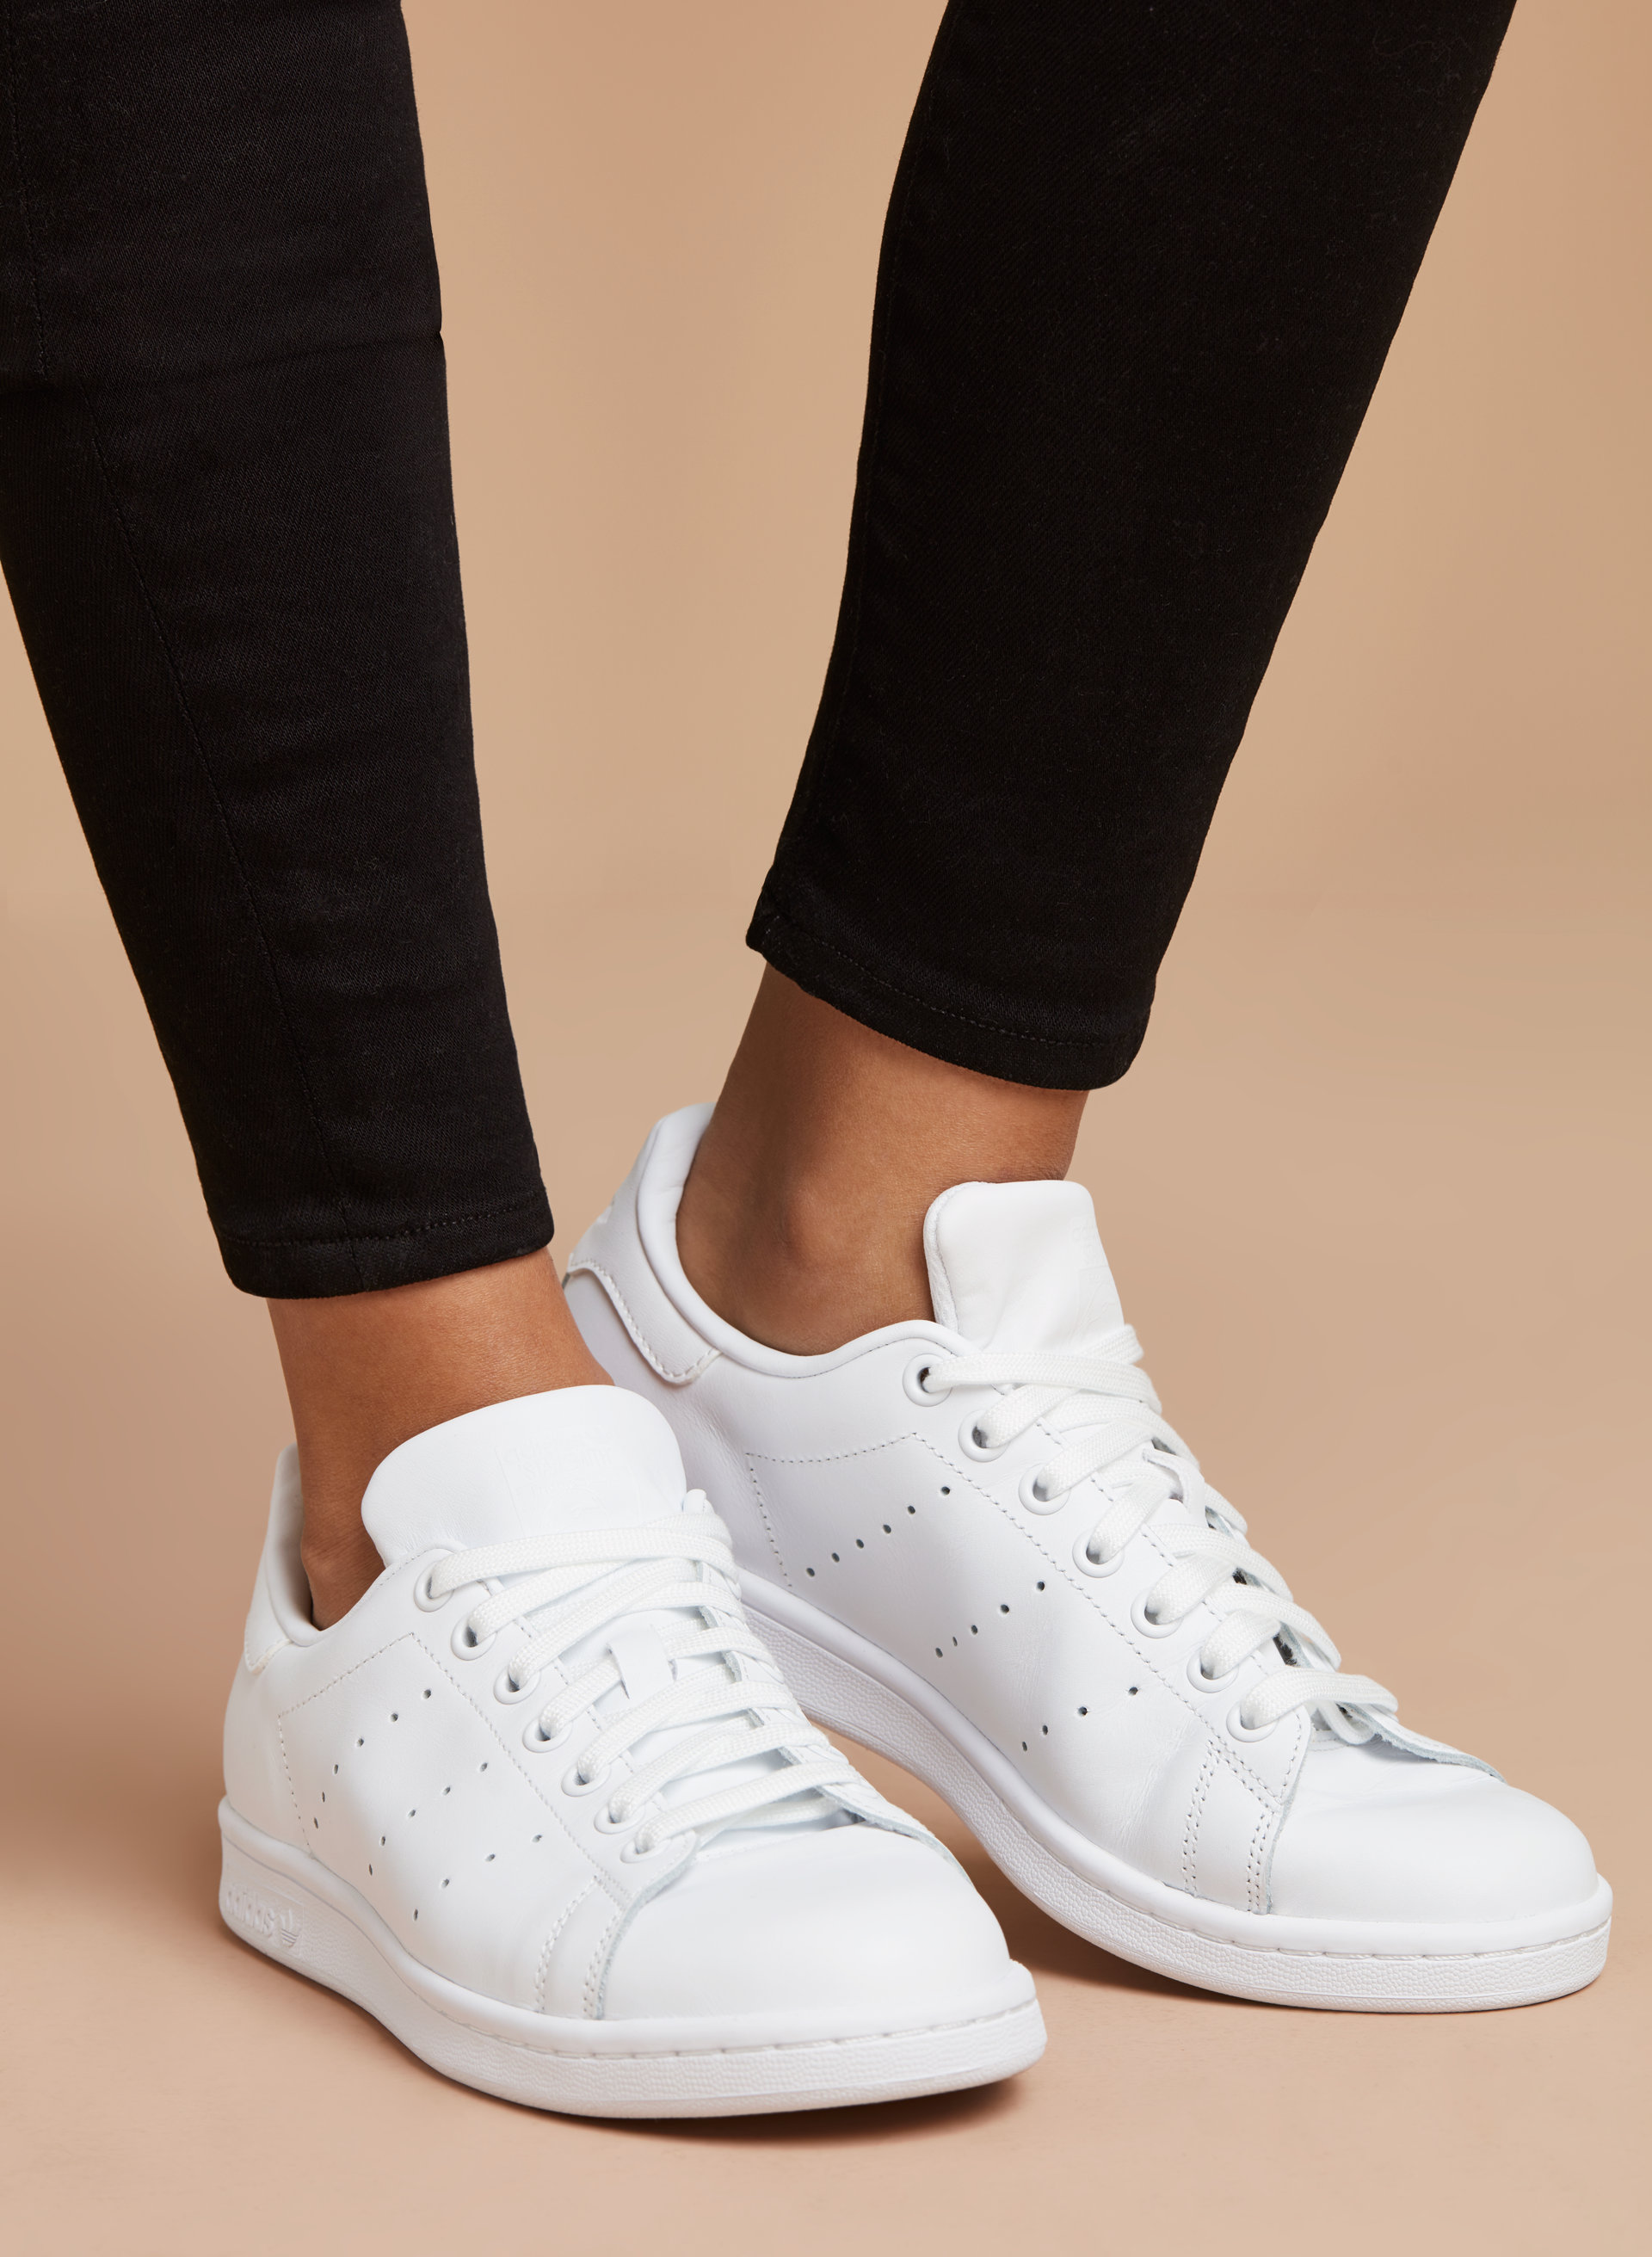 stan smith sneakers adidas SLWiY